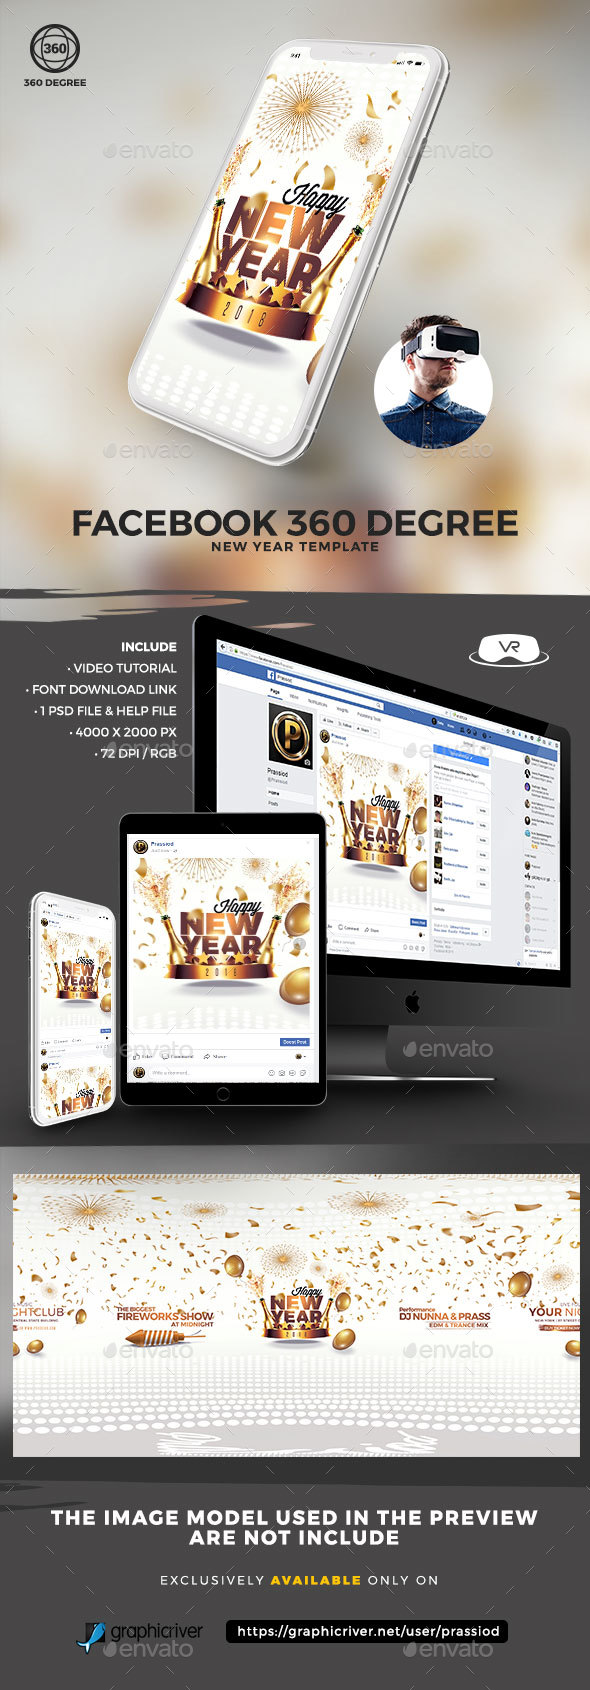 Facebook 360 Degree New Year Template - Miscellaneous Social Media